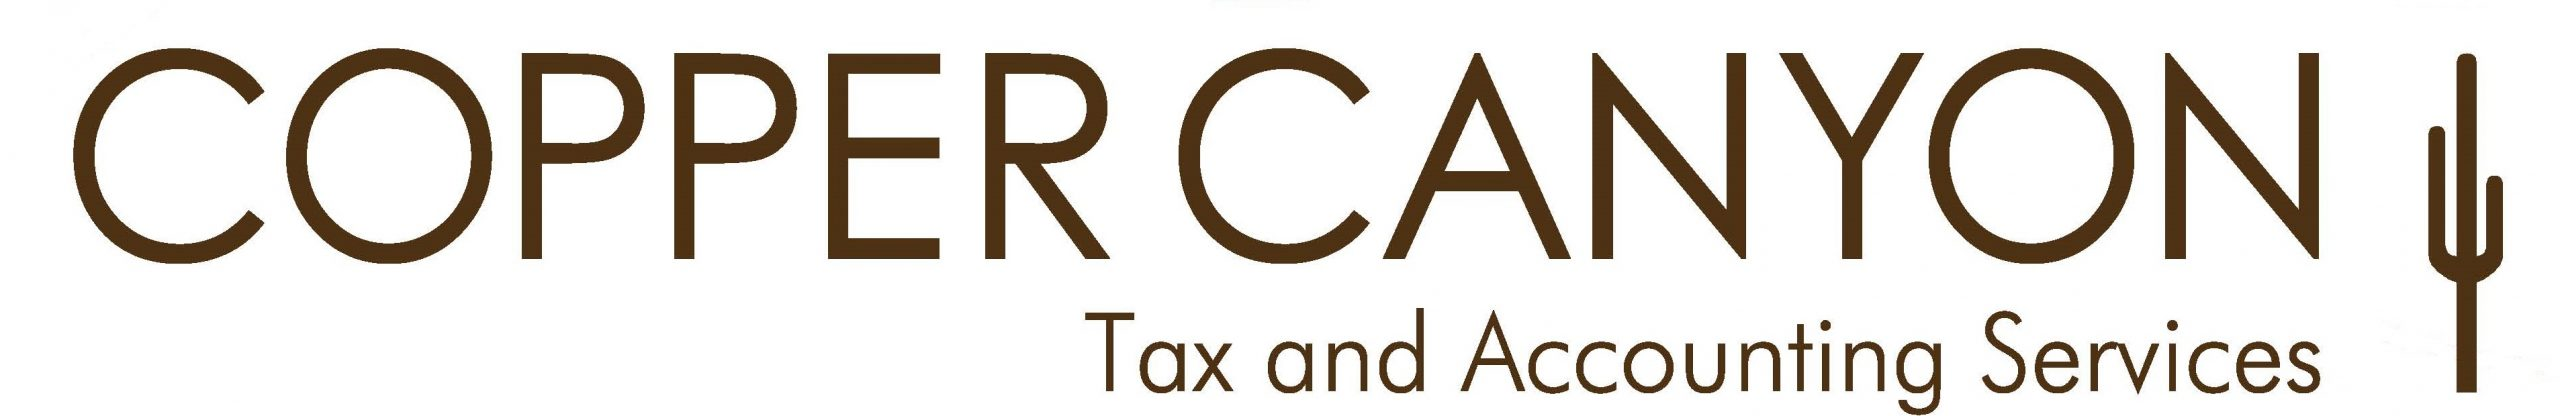 Copper Canyon Tax & Accounting Services